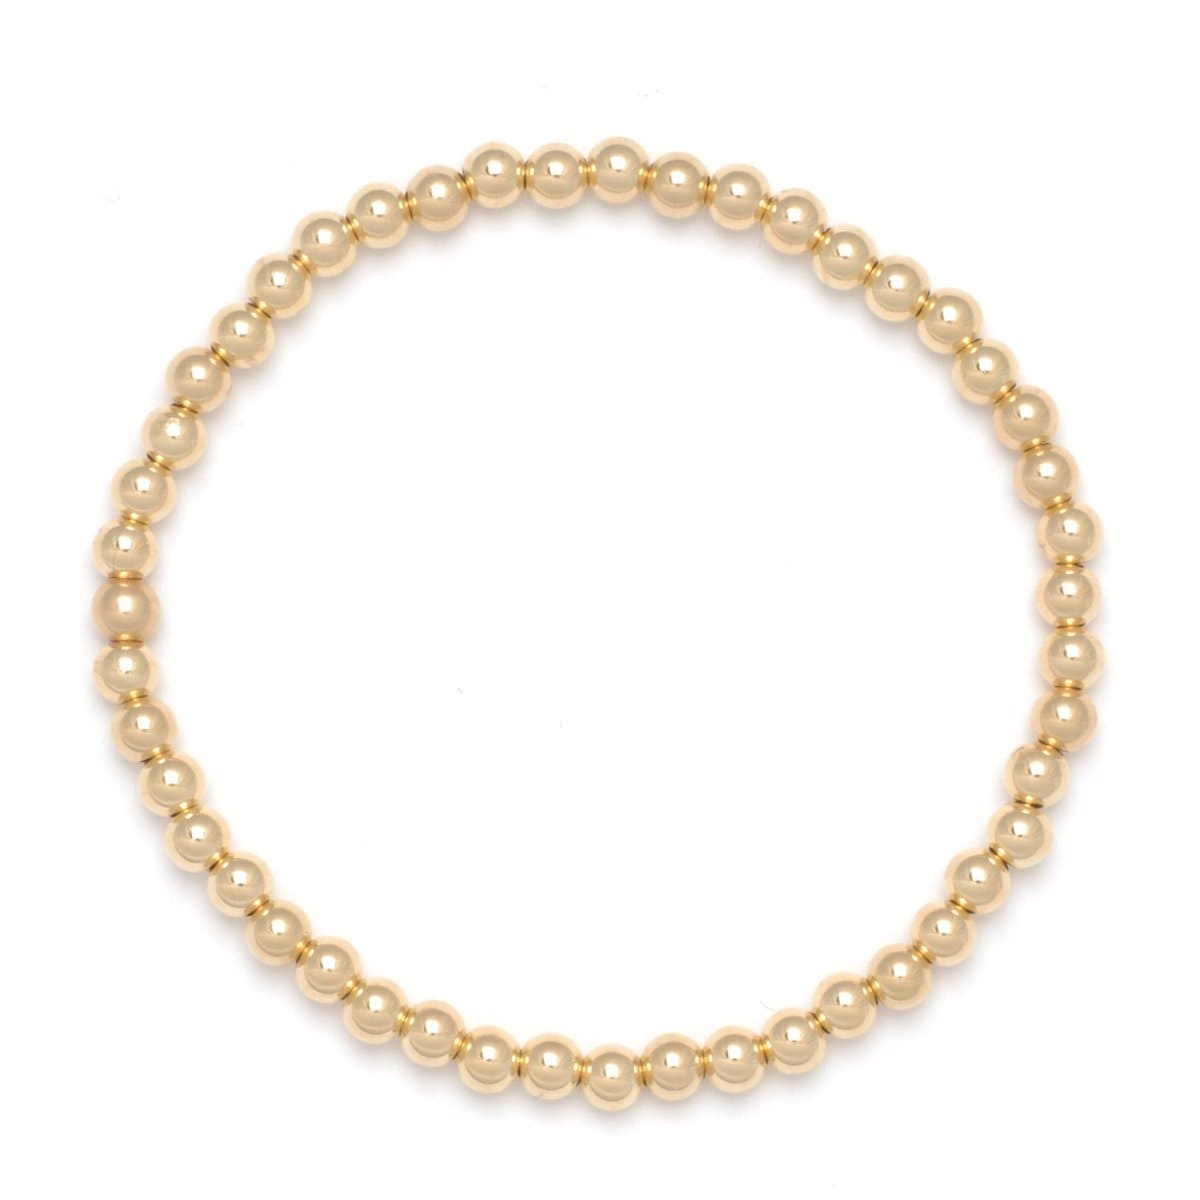 4mm yellow gold round beaded bracelet